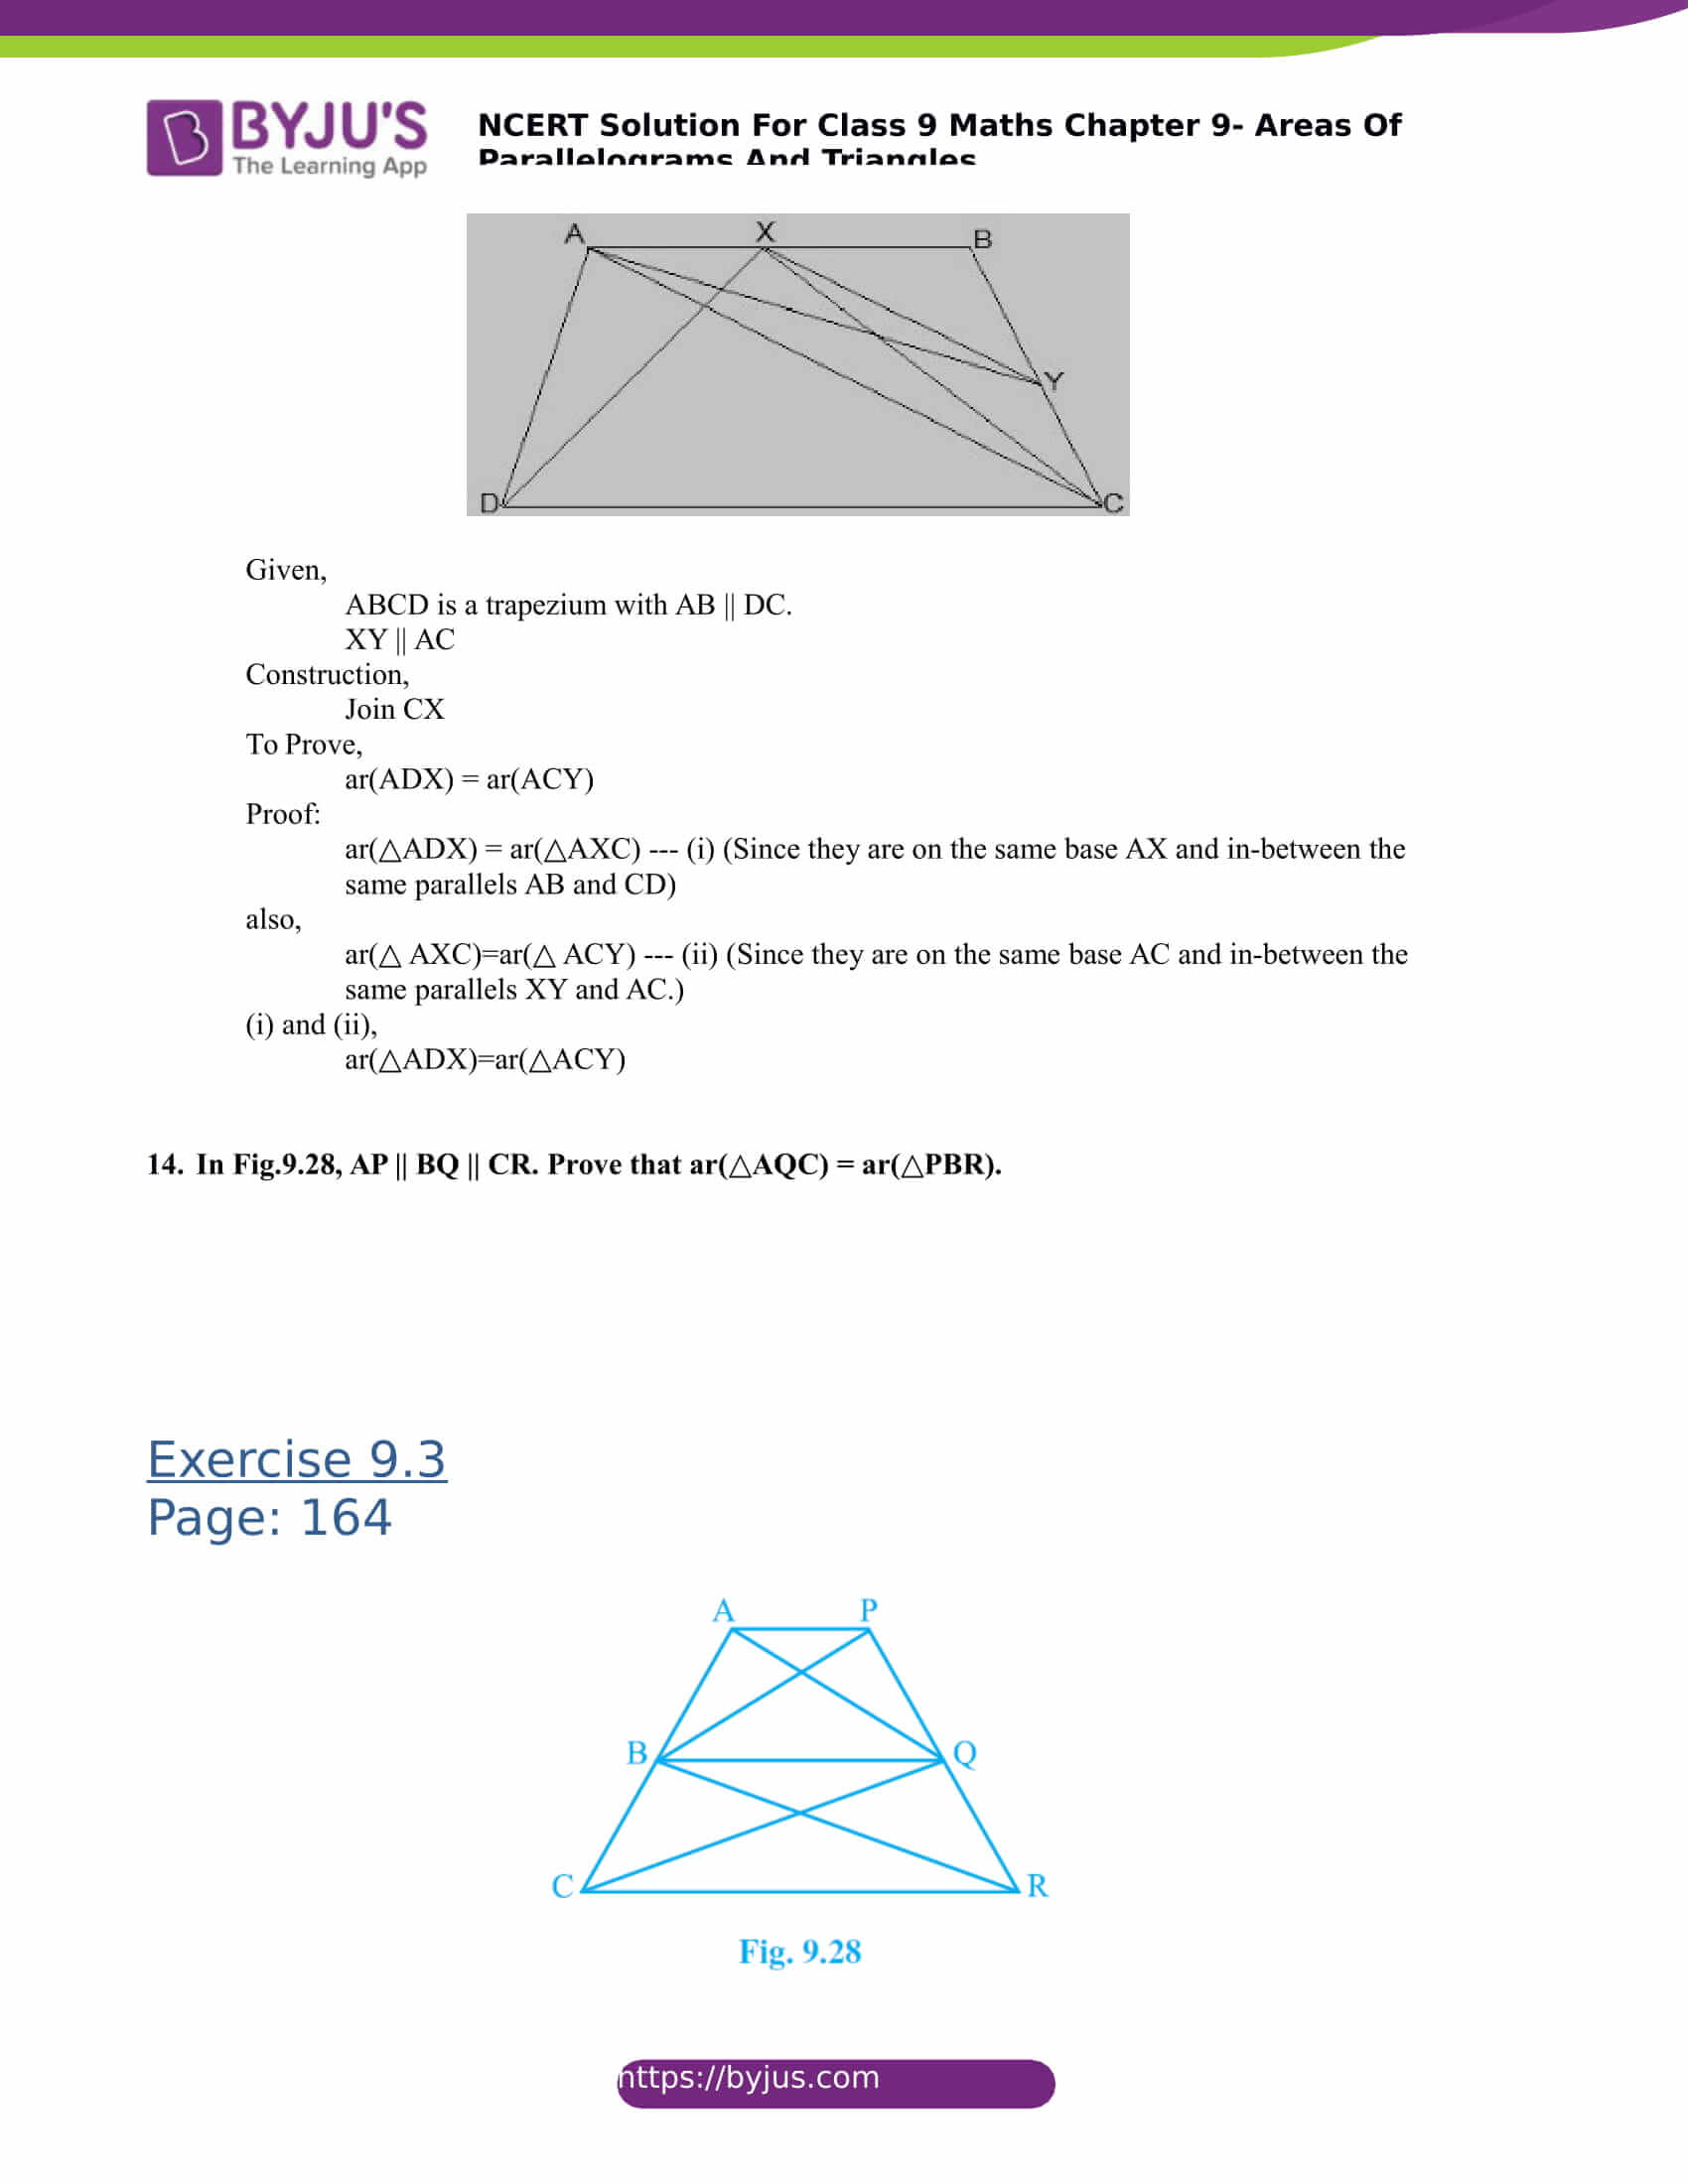 NCERT Solutions for class 9 Maths Chapter 9 Areas of parallelograms and triangles Part 17